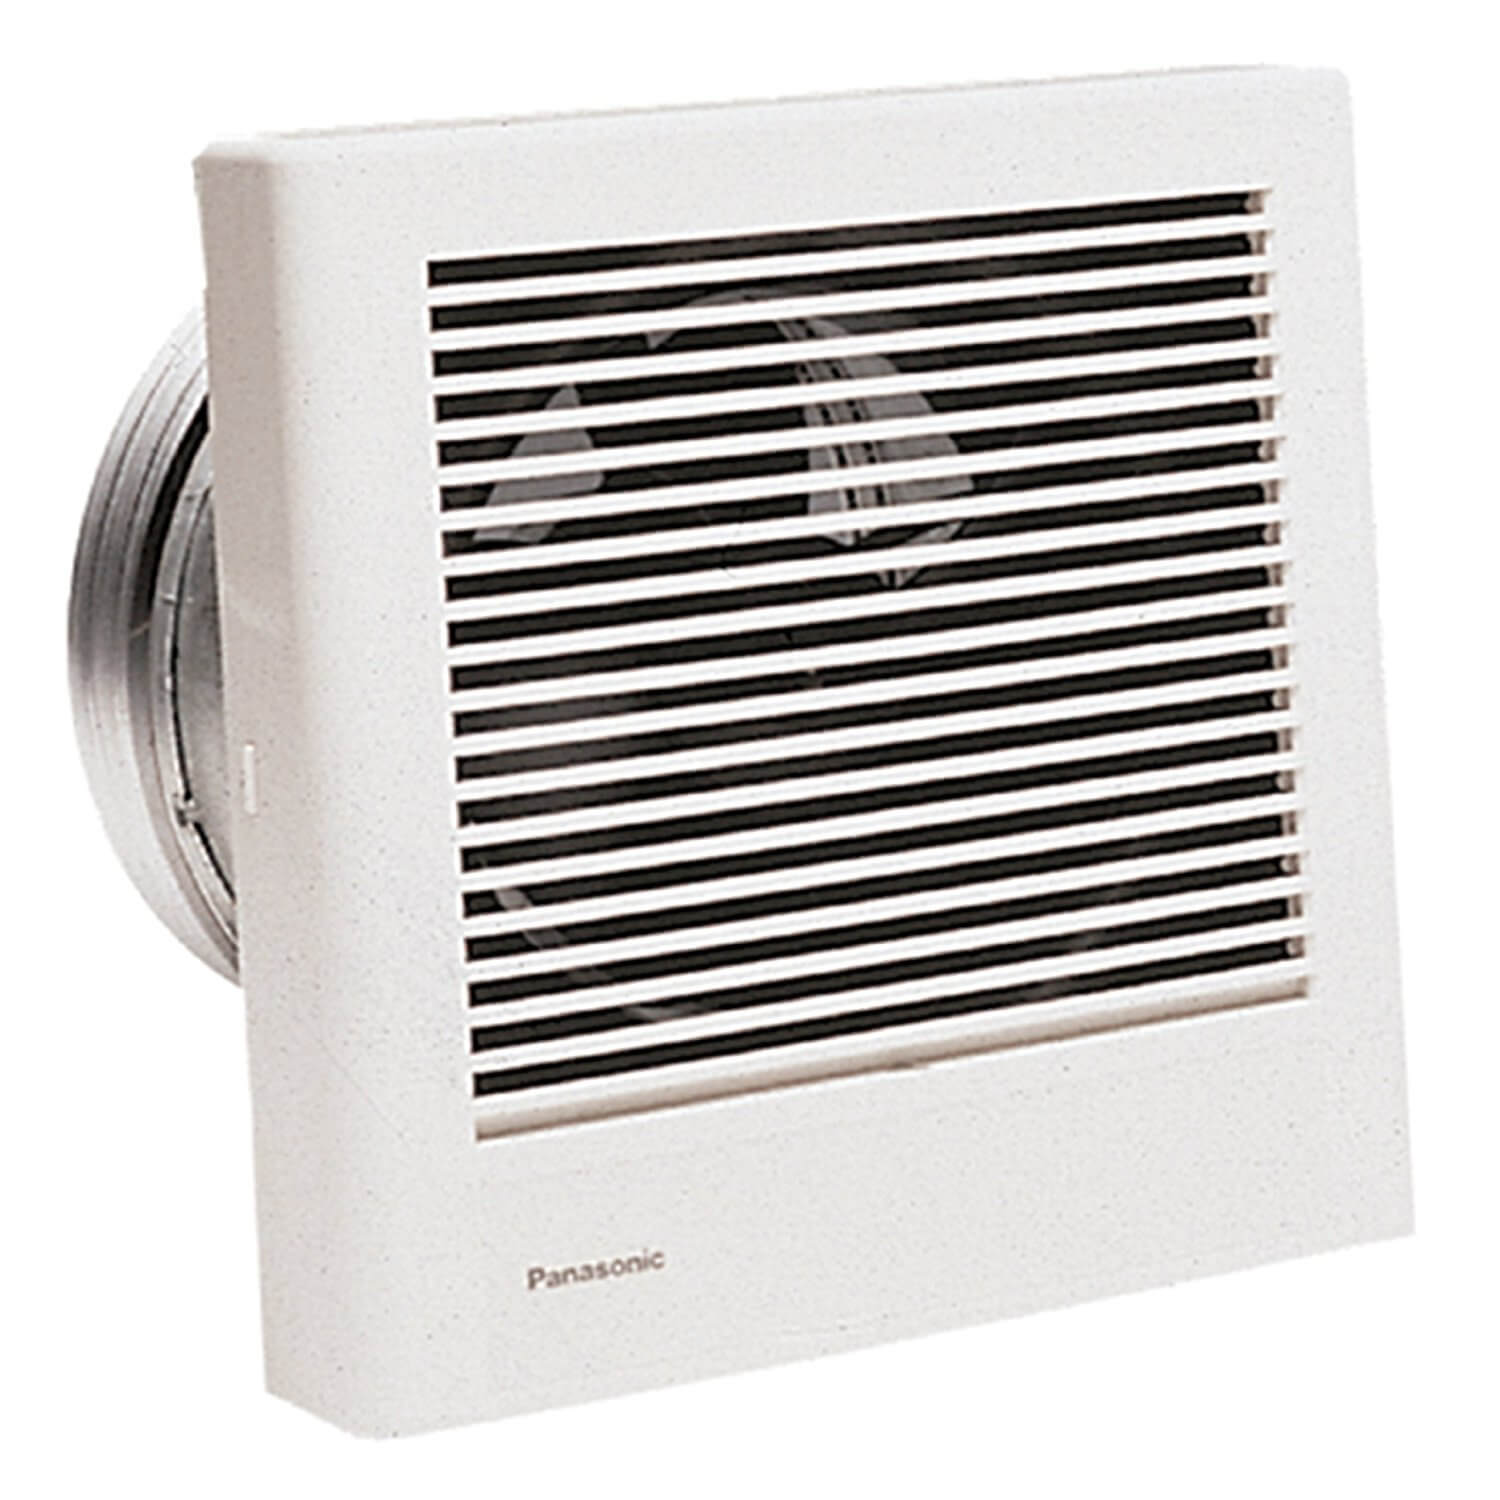 Genial Panasonic FV 08WQ1 WhisperWall 70 CFM Wall Mounted Fan